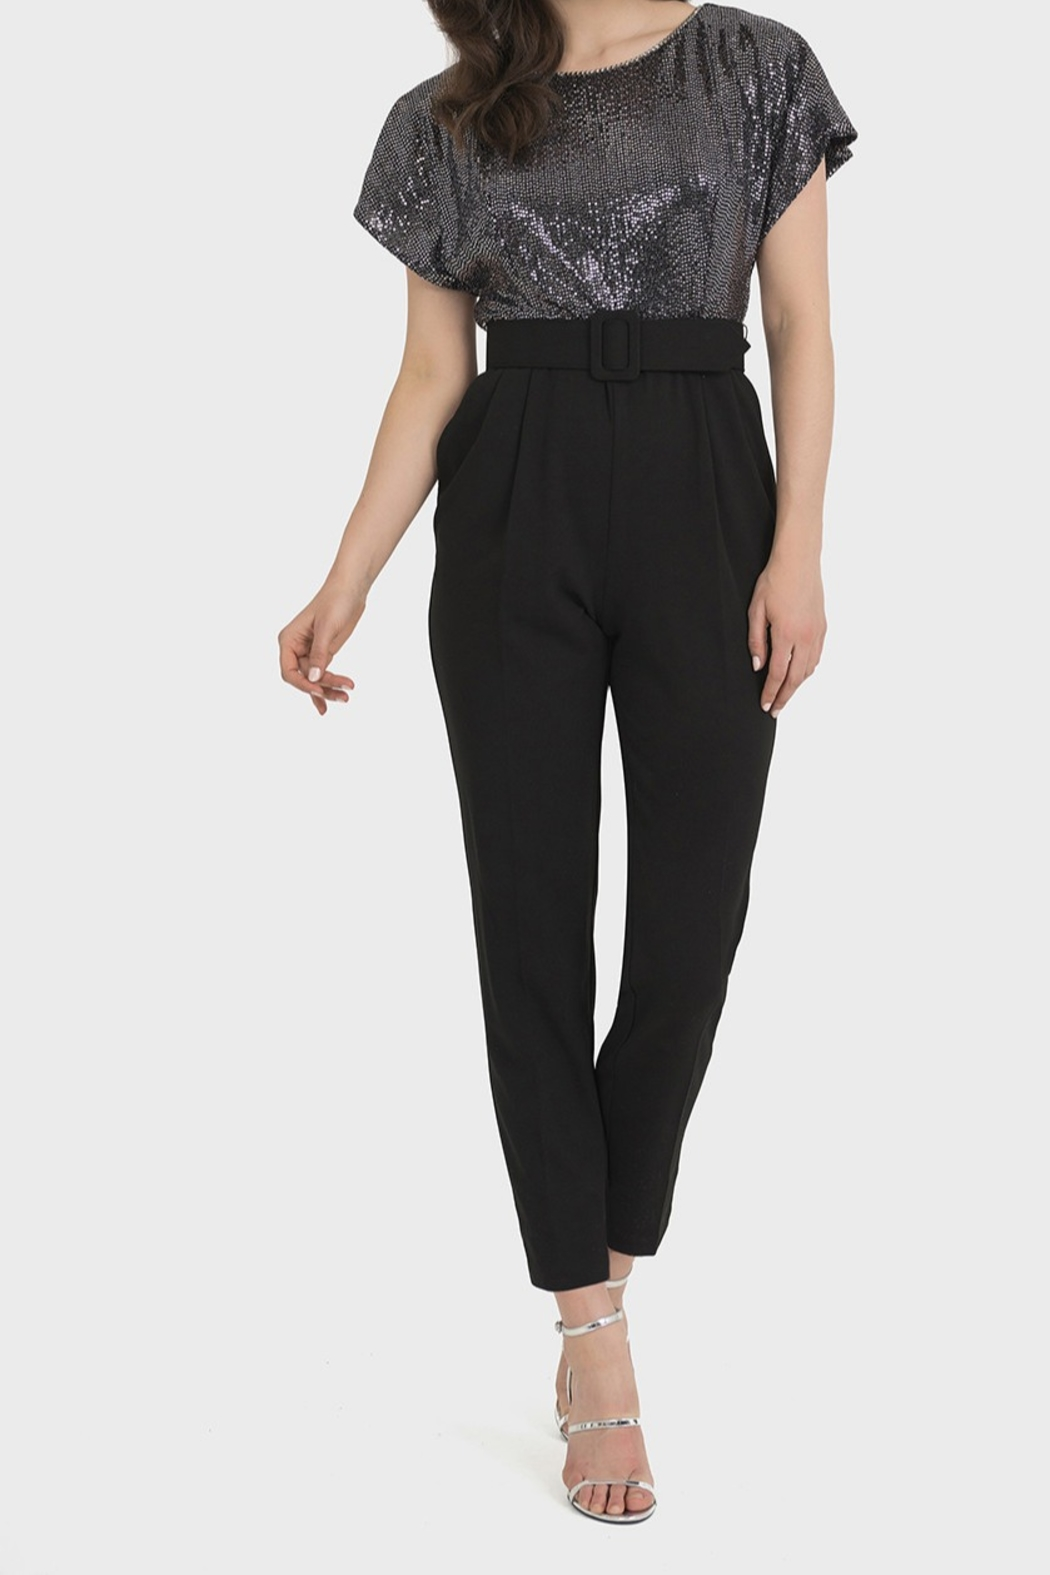 Joseph Ribkoff BLACK/SILVER JUMPSUIT - Front Cropped Image